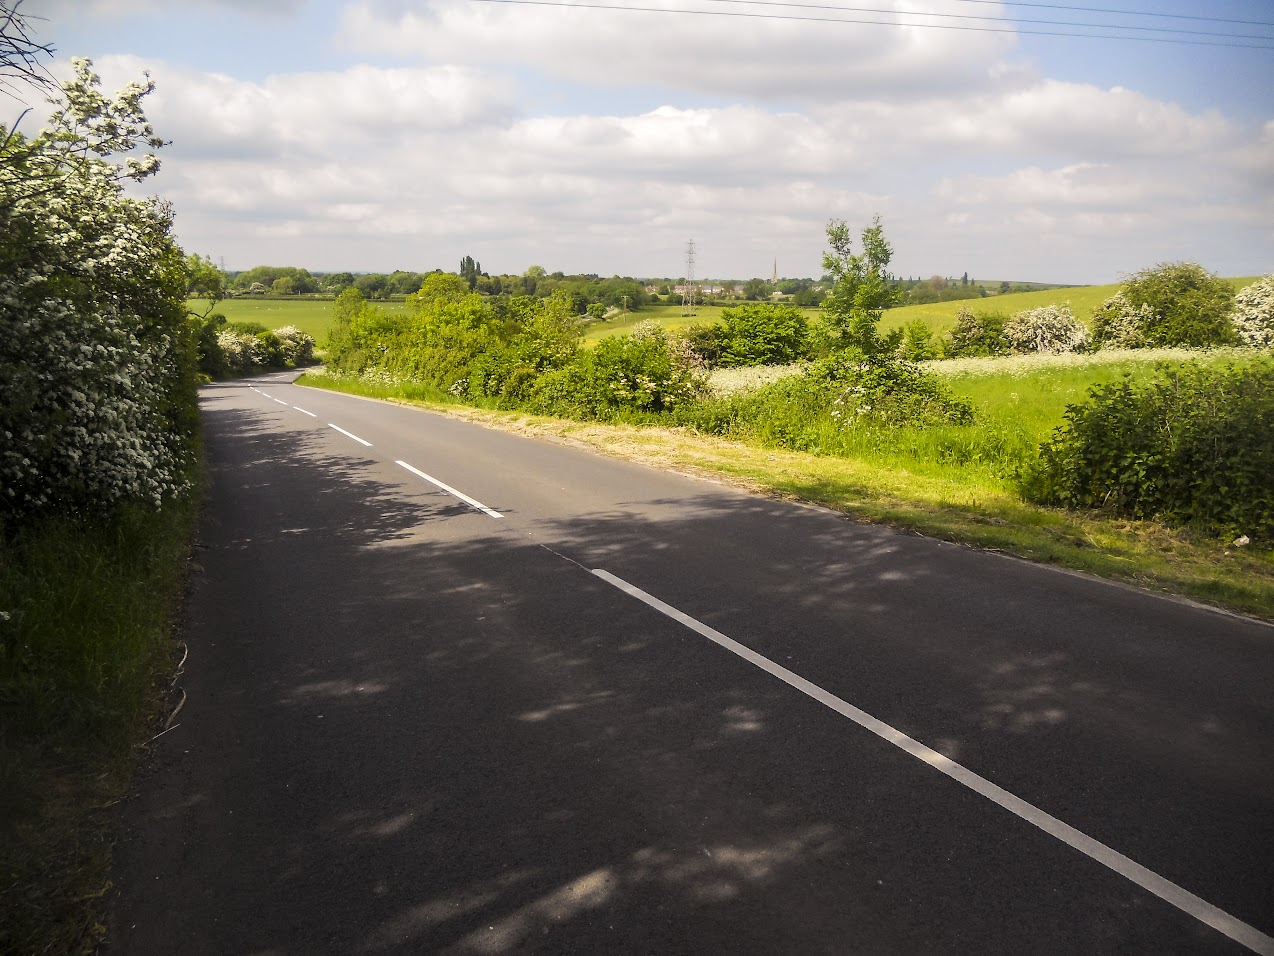 The road back to Bottesford